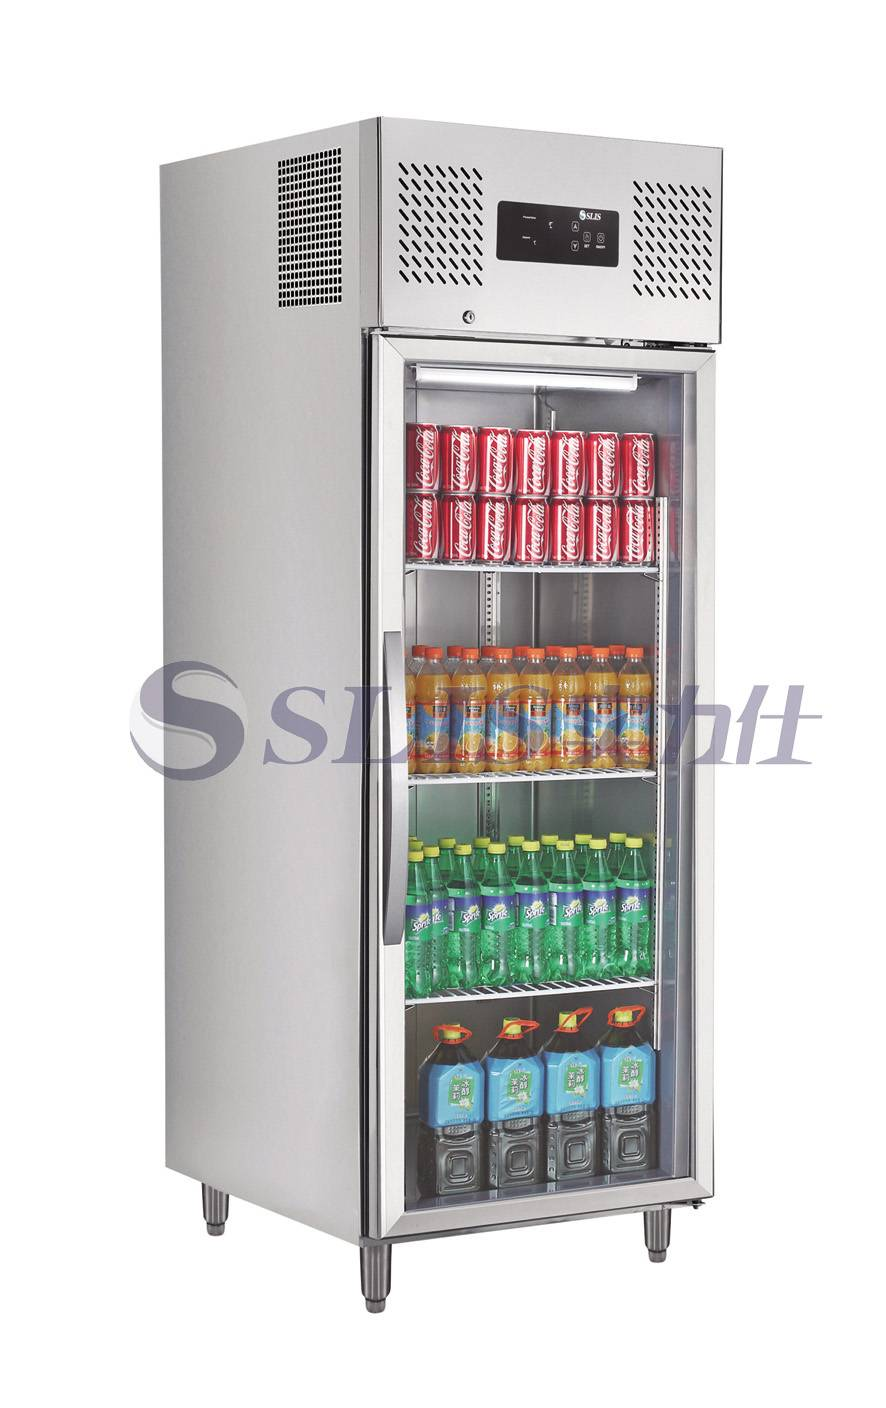 Fan Cooling Display Stainless Steel Commercial Refrigerator,600L,LED Touch Controller